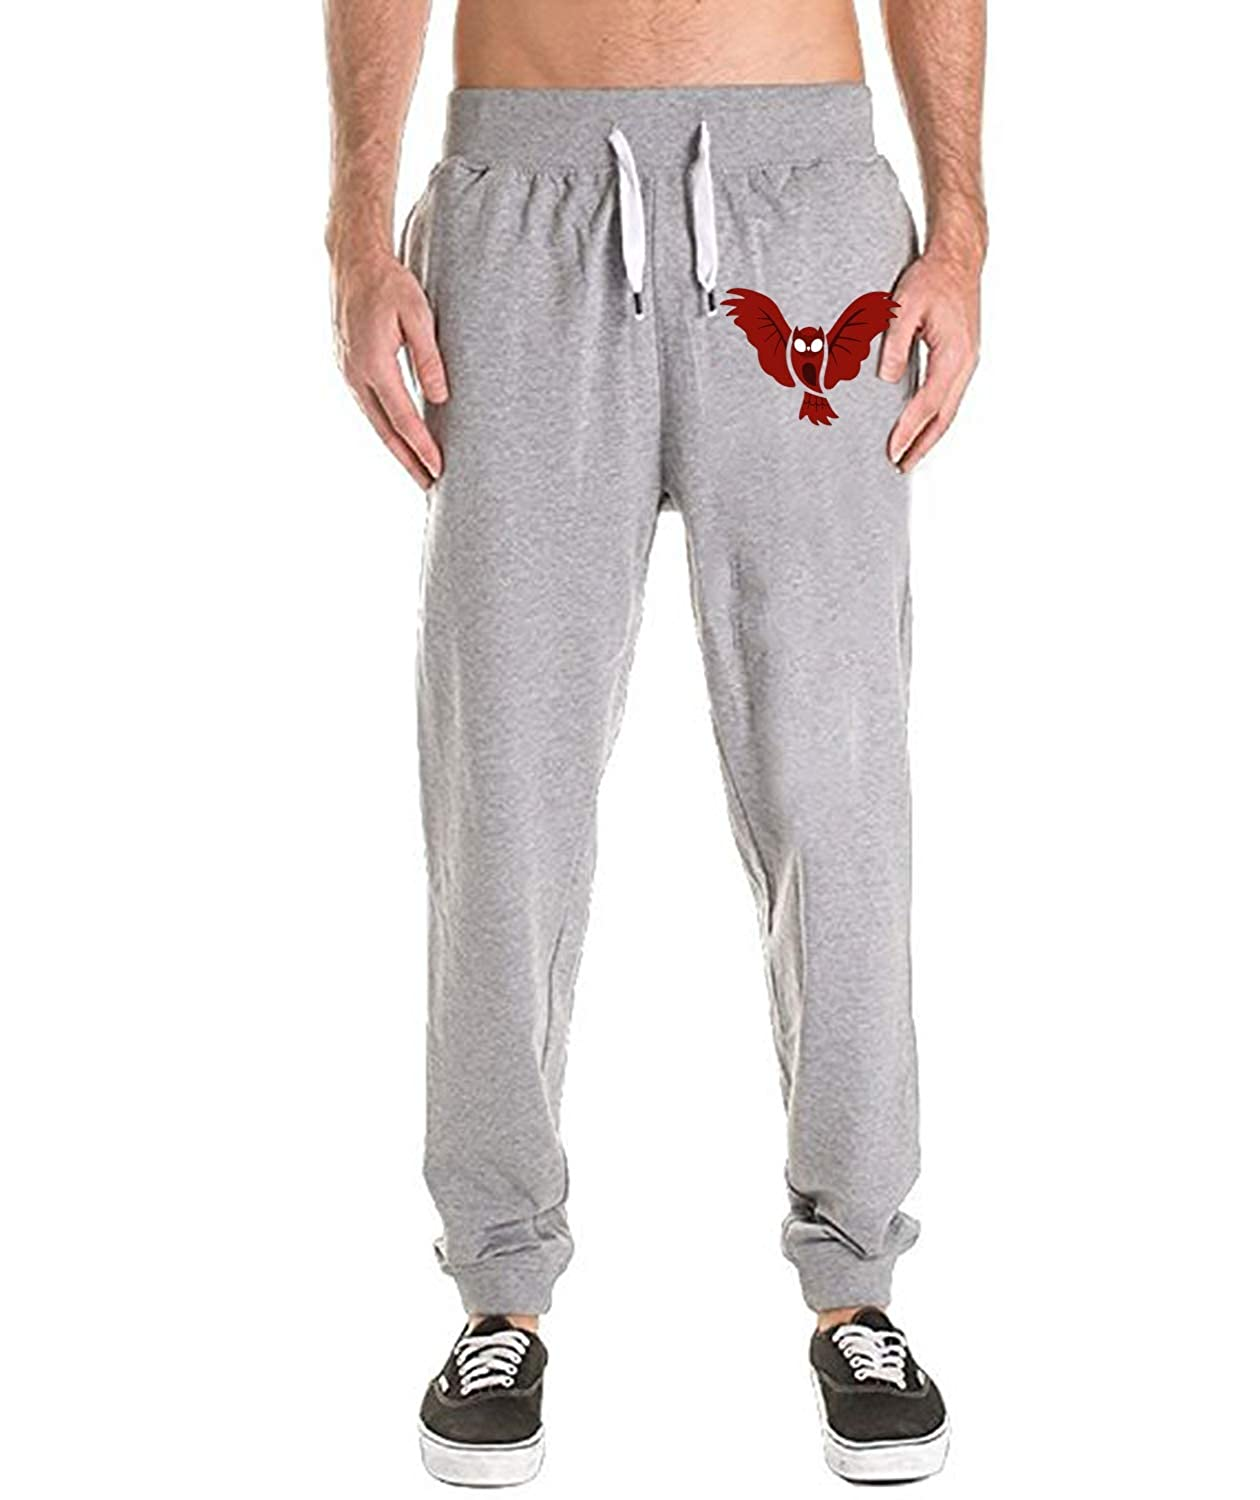 Mens Athletics Jogger Pants Active Comfortable Pocket Workout Halloween Bats Sweatpants